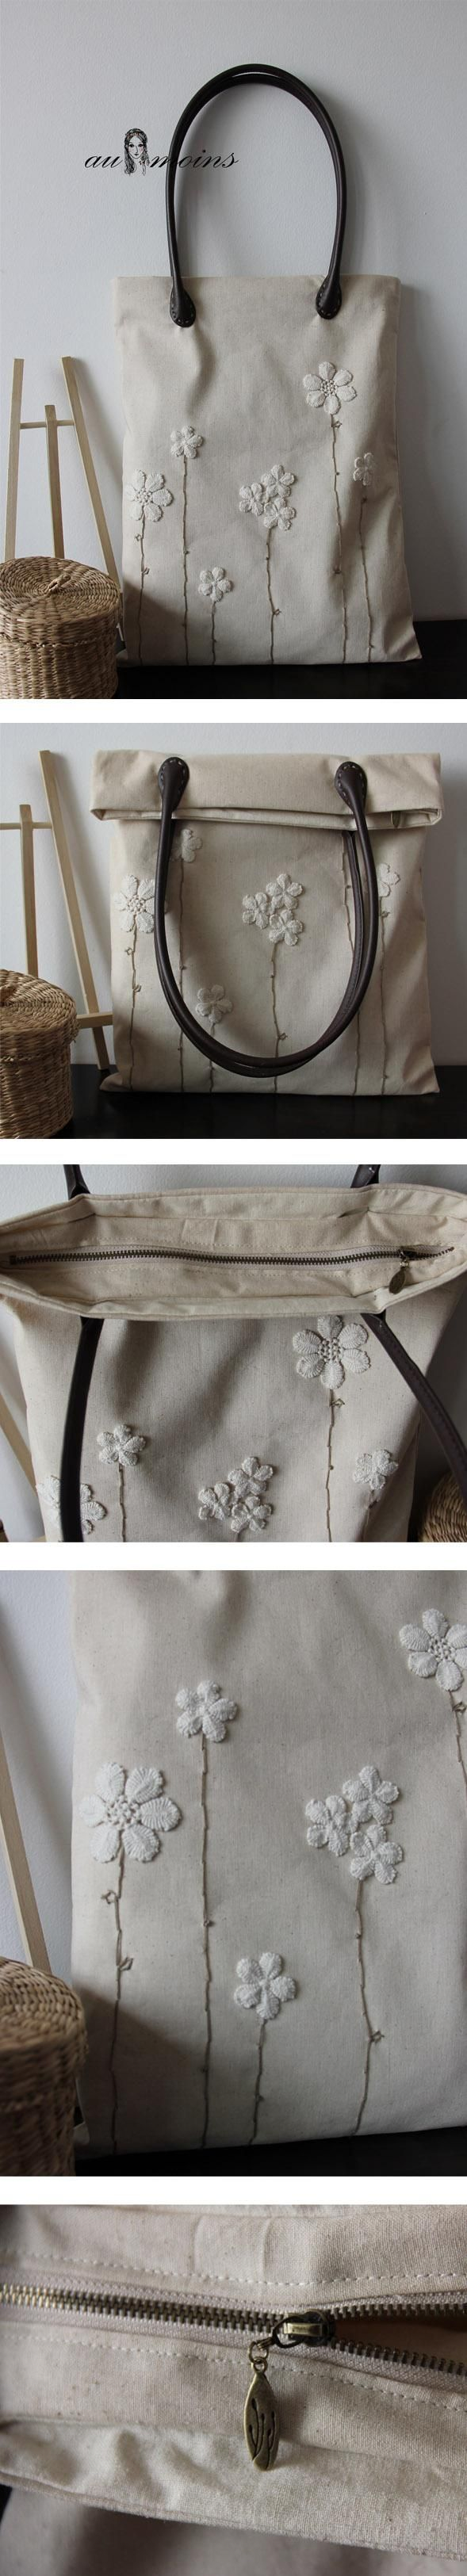 lace flowers on linen tote